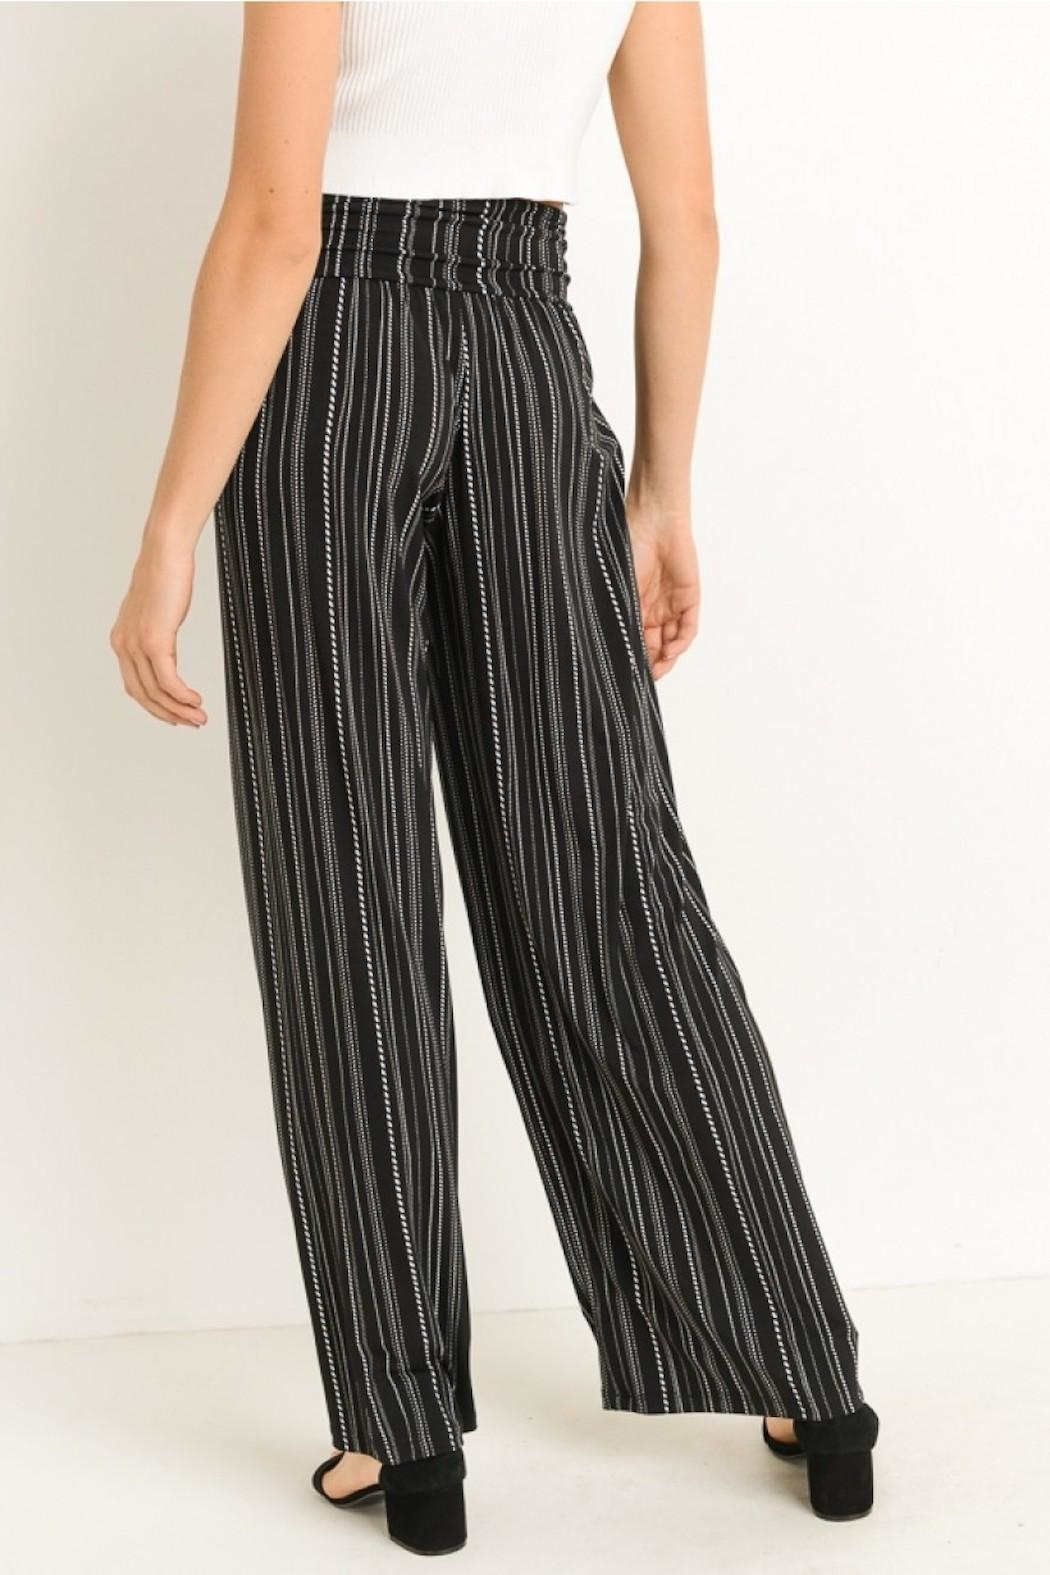 Gilli Striped Pants - Side Cropped Image